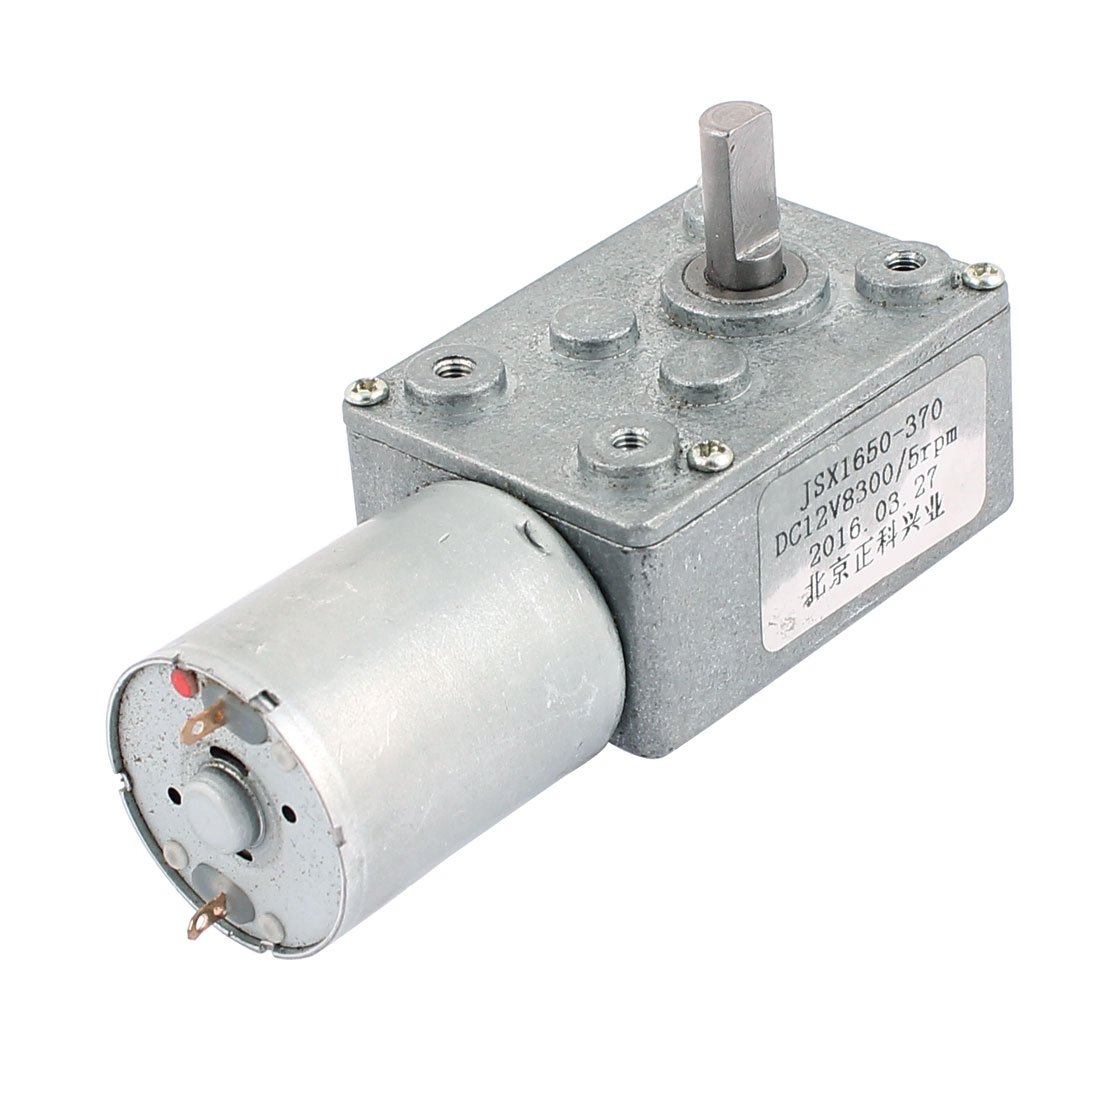 DC 12V 5RPM 6mmx13mm D-Shape Shaft Electric Power Turbo Worm Geared Motor